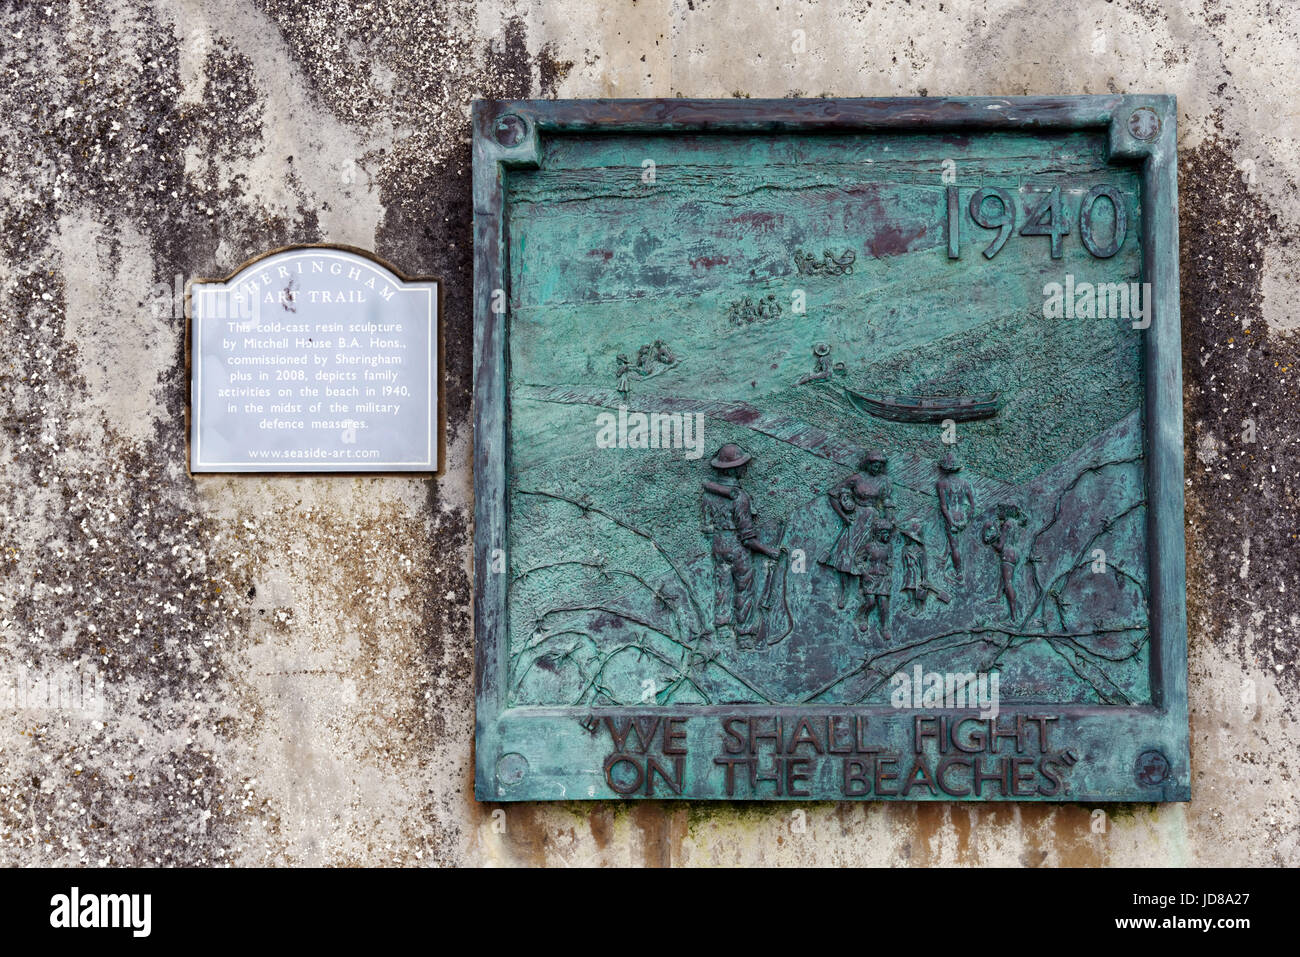 A plaque in Sherigham, Norfolk, commemorating the the preparations for a Nazi invasion with Churchill's famous - Stock Image